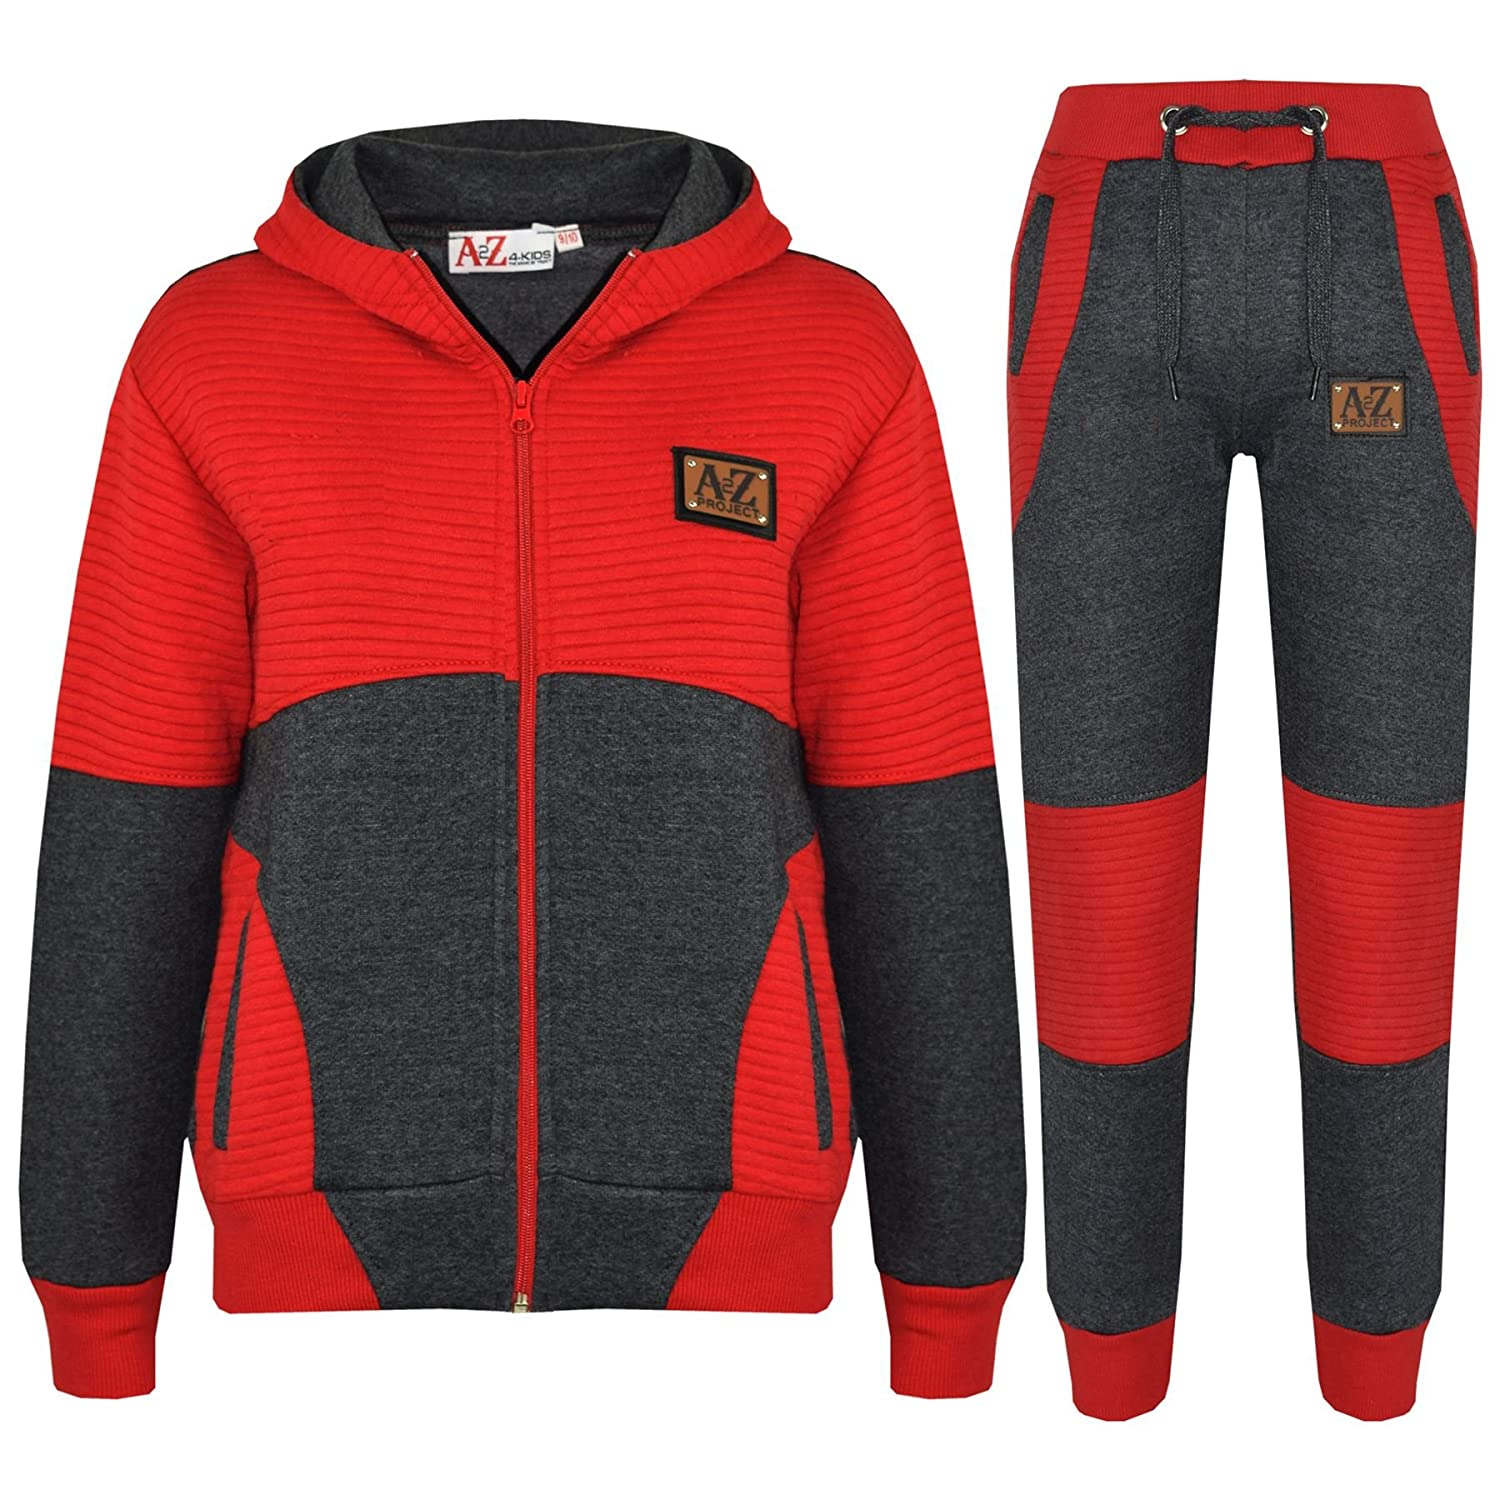 A2Z 4 Kids® Kids Tracksuit Boys Girls Designer's A2Z Project Print Hoodie & Botom Jogging Suit Joggers Age 7 8 9 10 11 12 13 Years